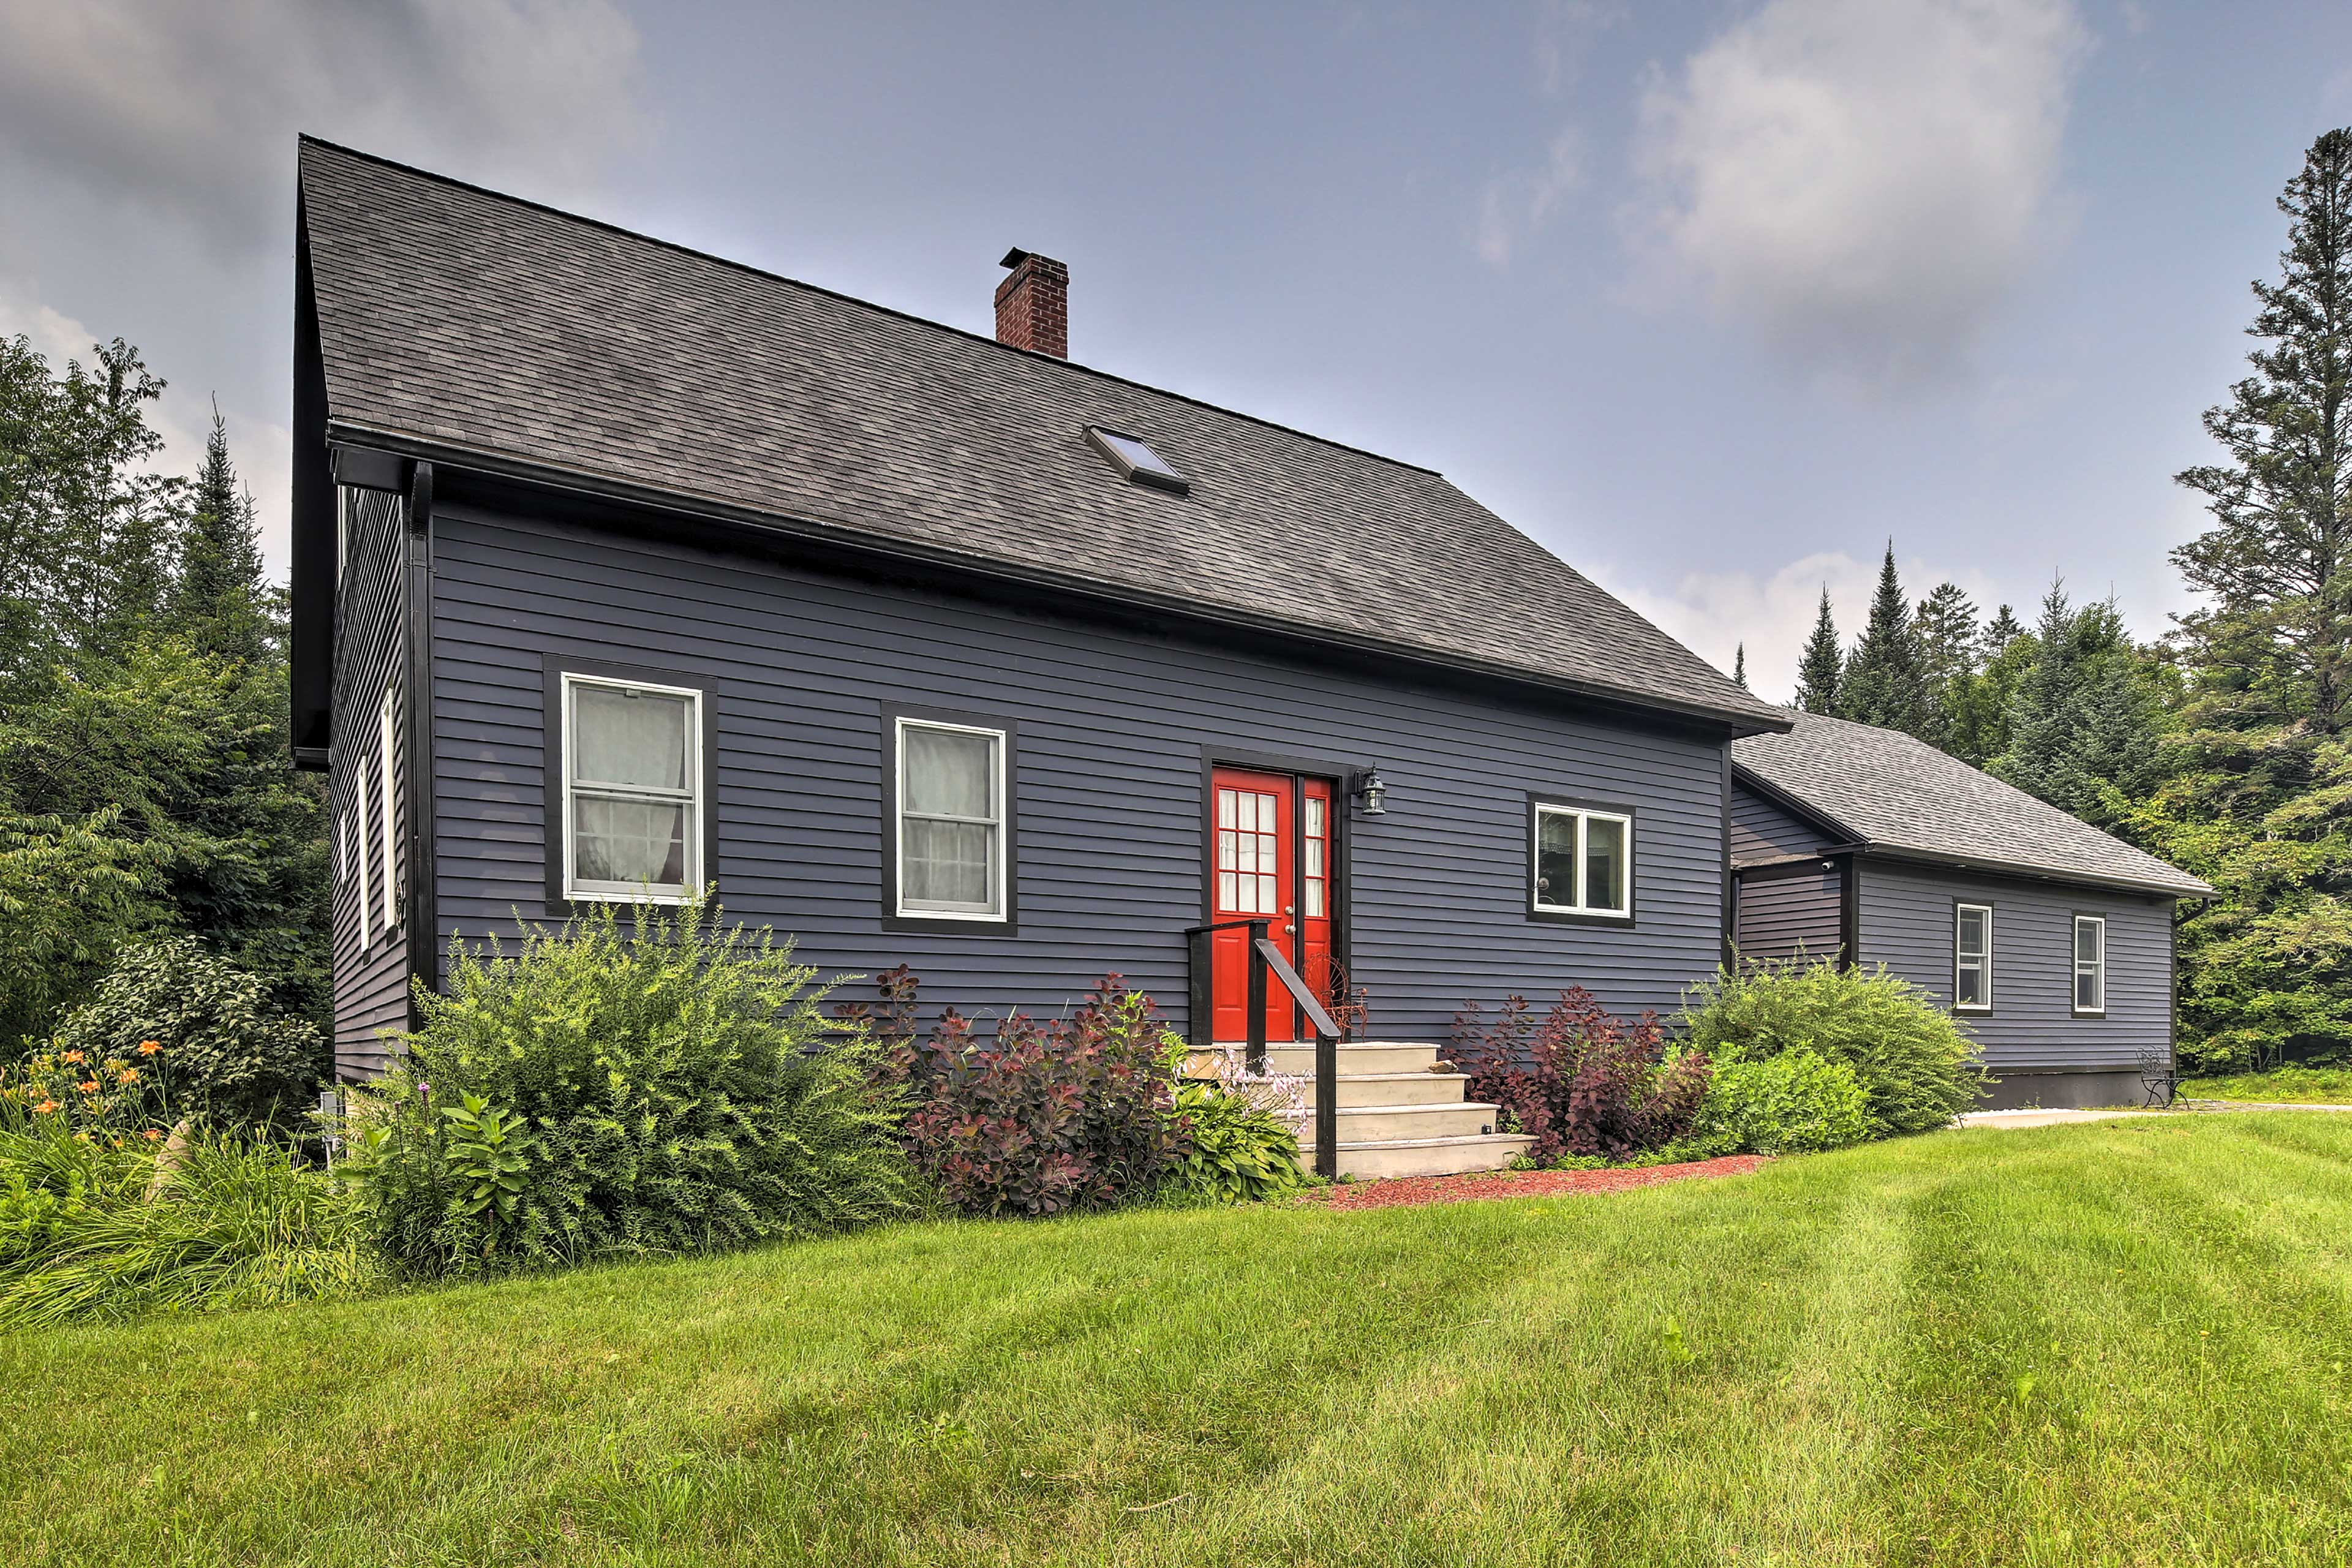 Lyndon Vacation Rental Home   4BR   3.5BA   2,220 Sq Ft   Stairs to Access